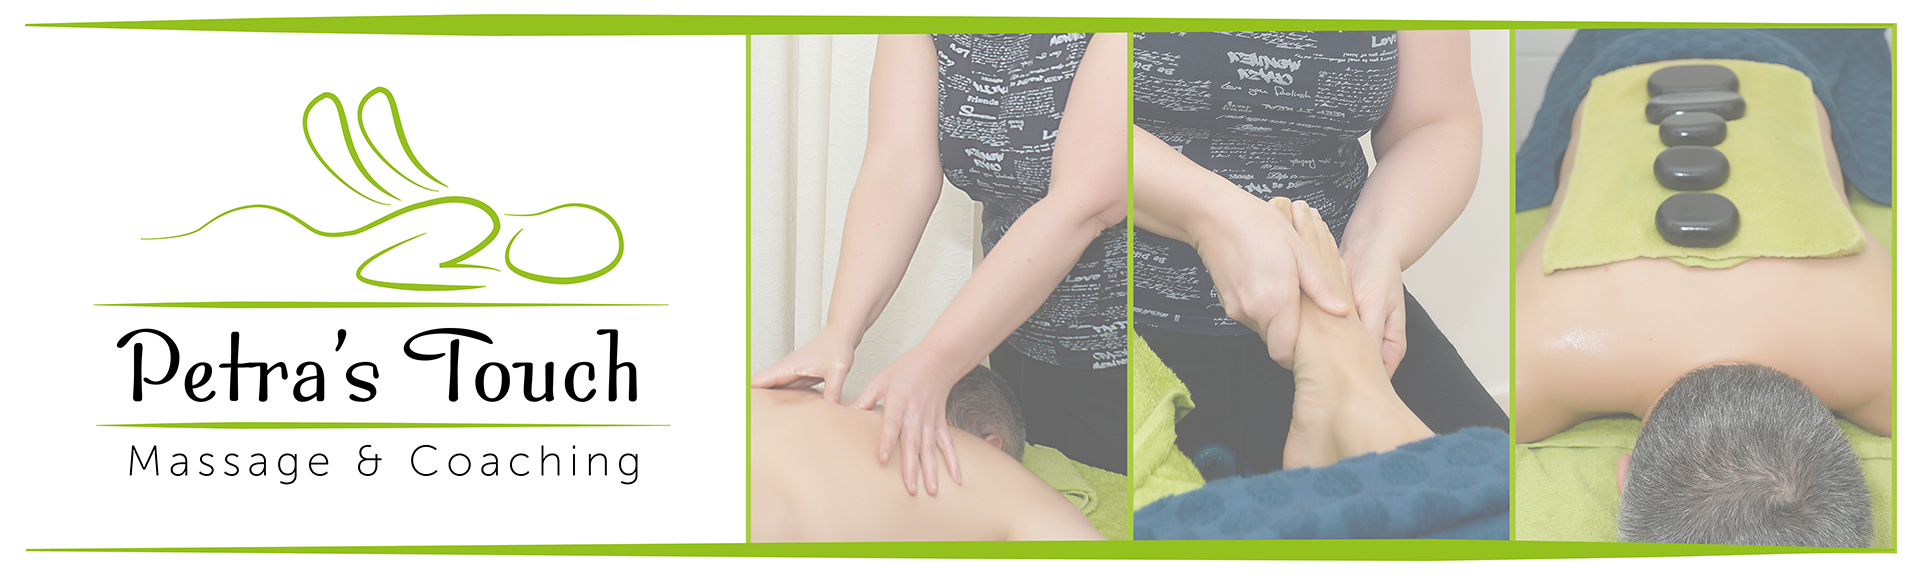 Petra's Touch Massage en Coaching